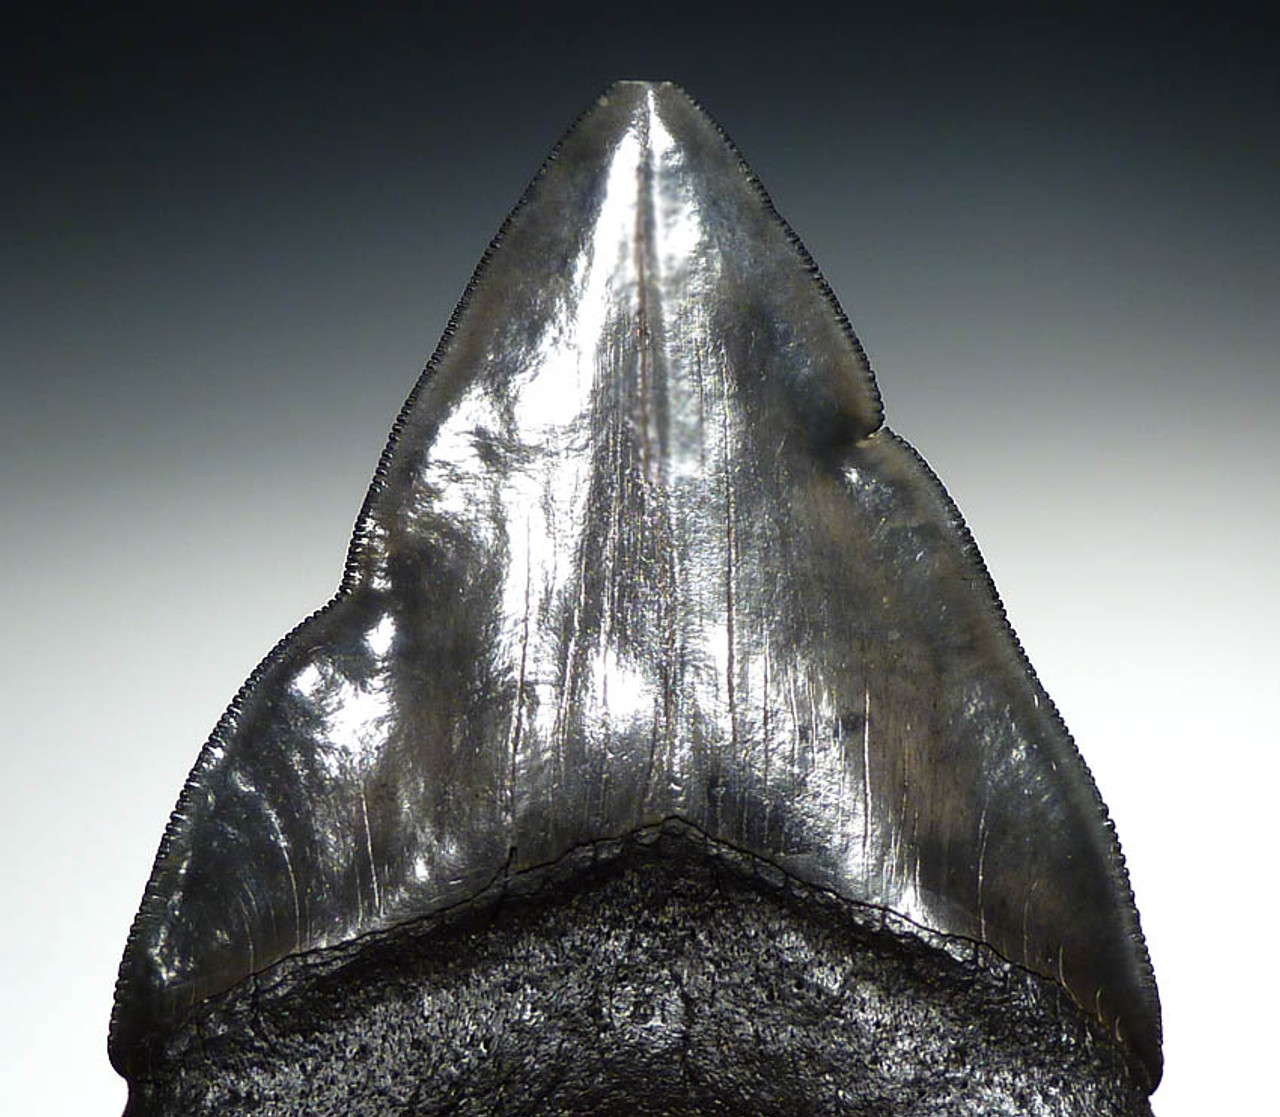 SH6-205 - RARE PATHOLOGICALLY DEFORMED MEGALODON TOOTH WITH DRAMATIC IN-GROWN EDGES